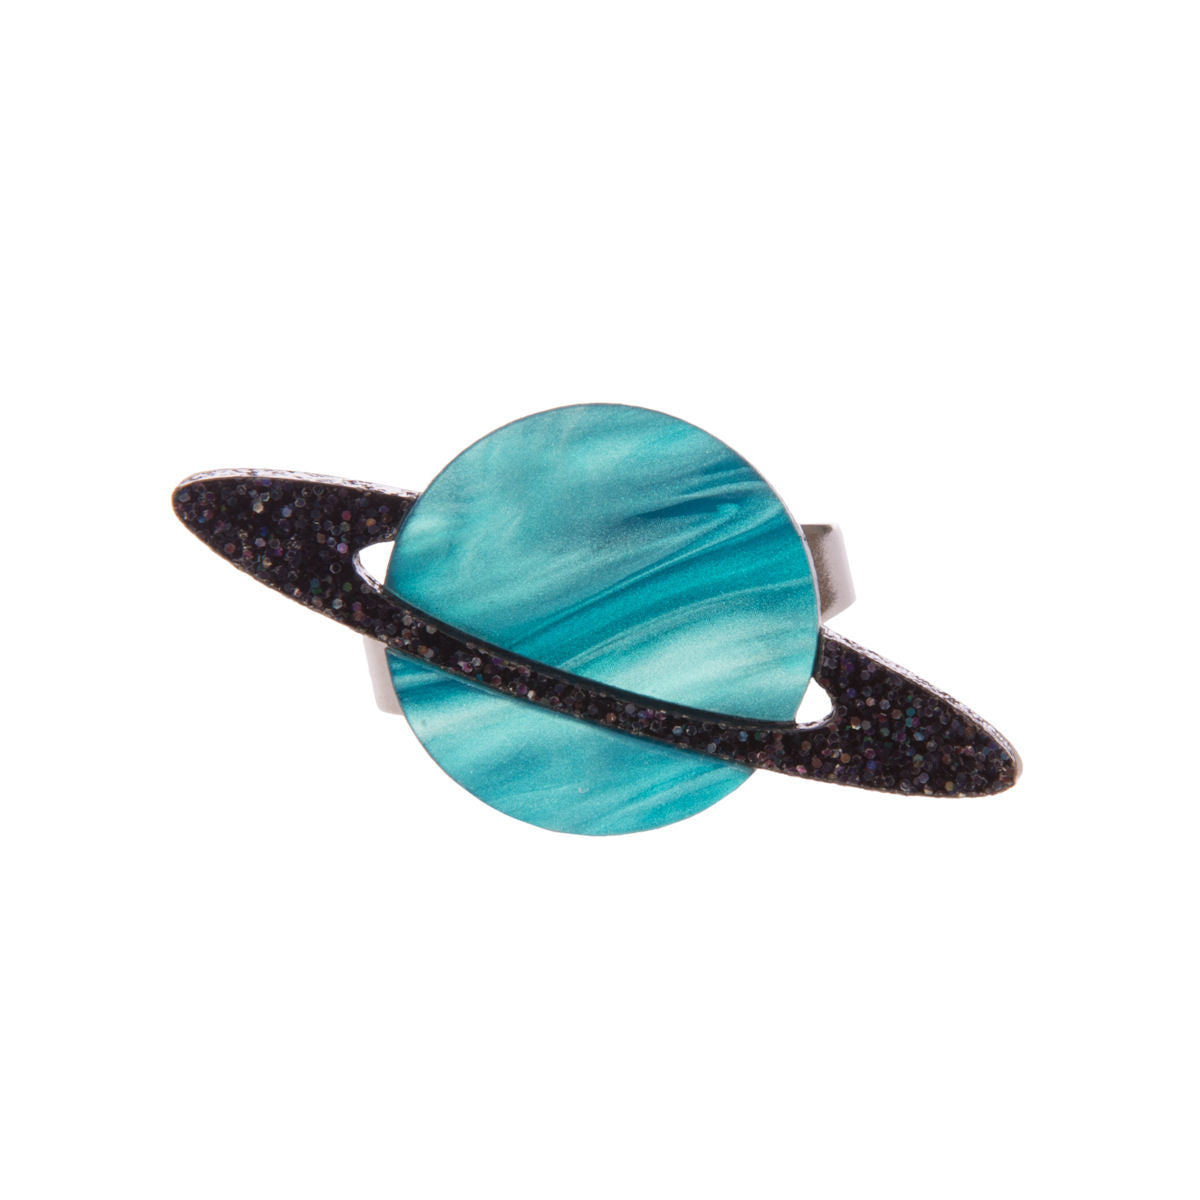 Sugar & Vice Planet Ring